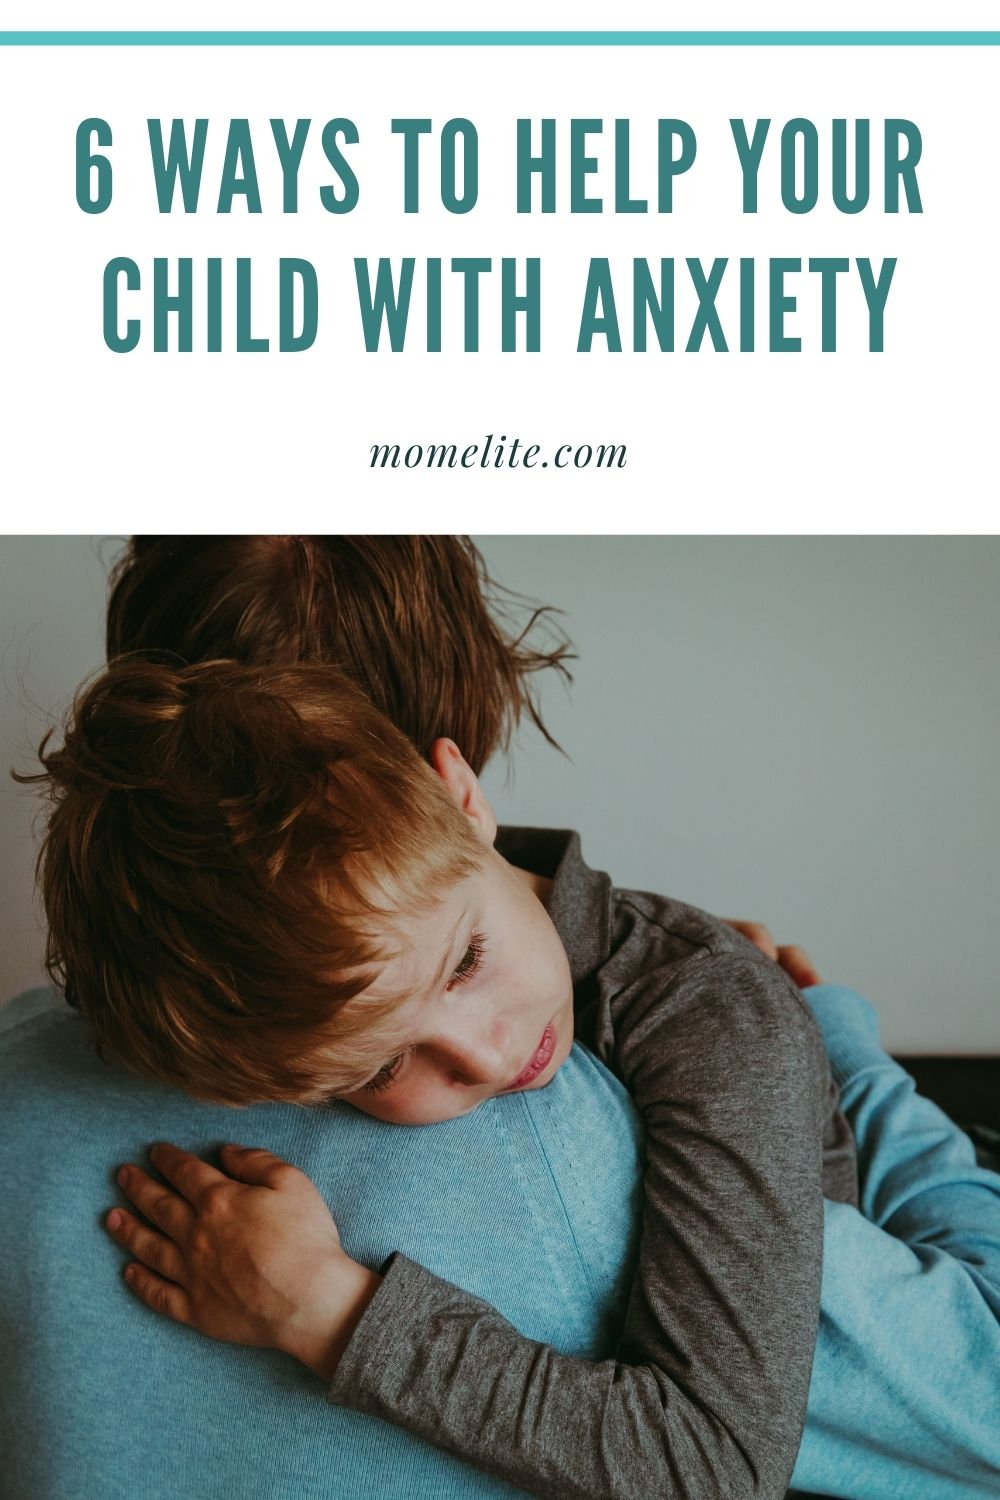 6 Ways to Help Your Child with Anxiety